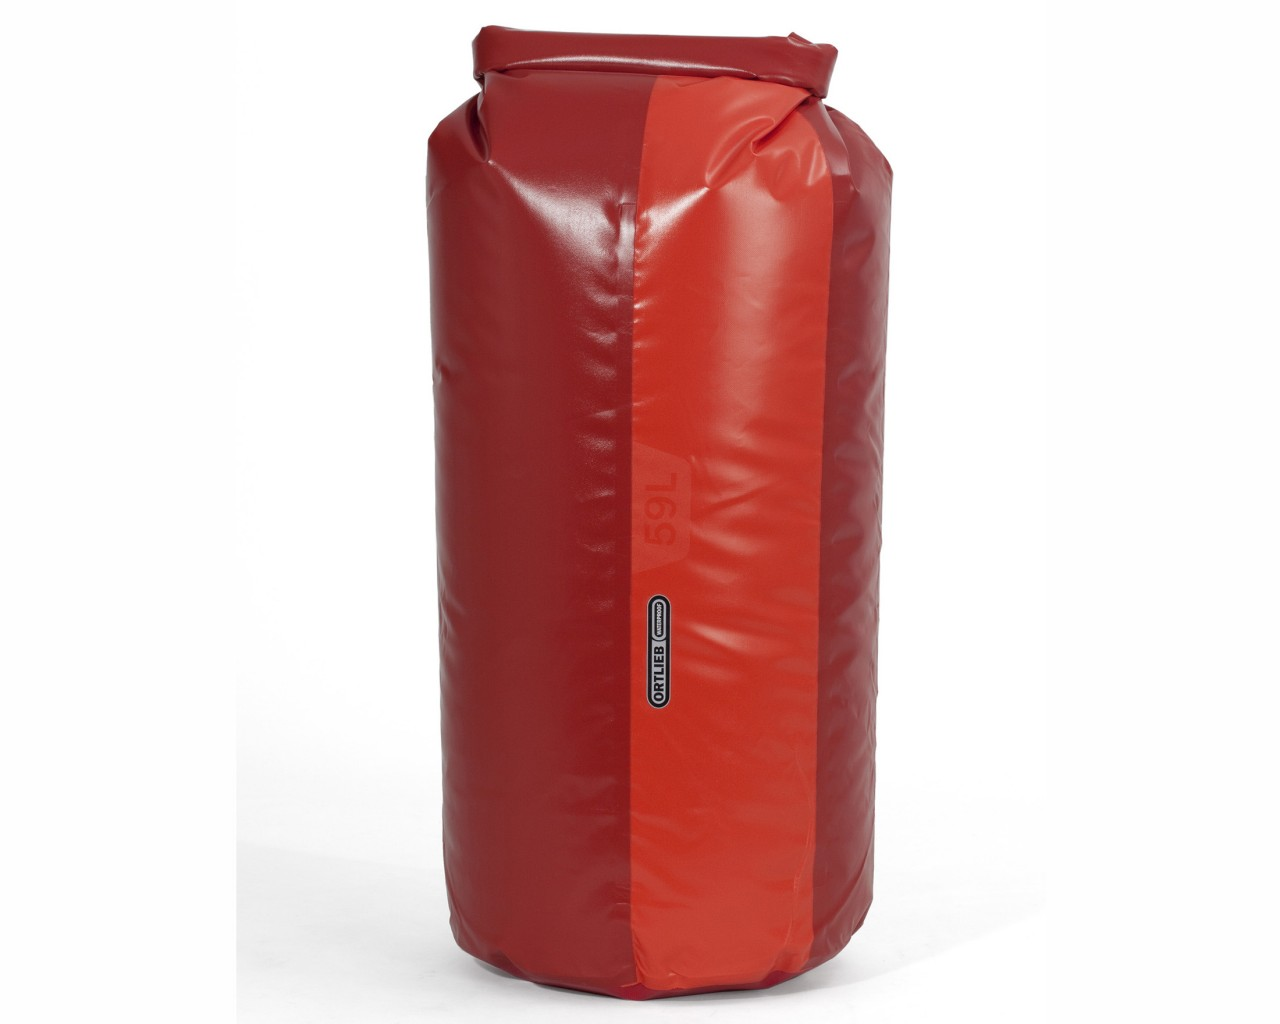 Ortlieb dry bag PD350 - 59 liter | cranberry-signal red